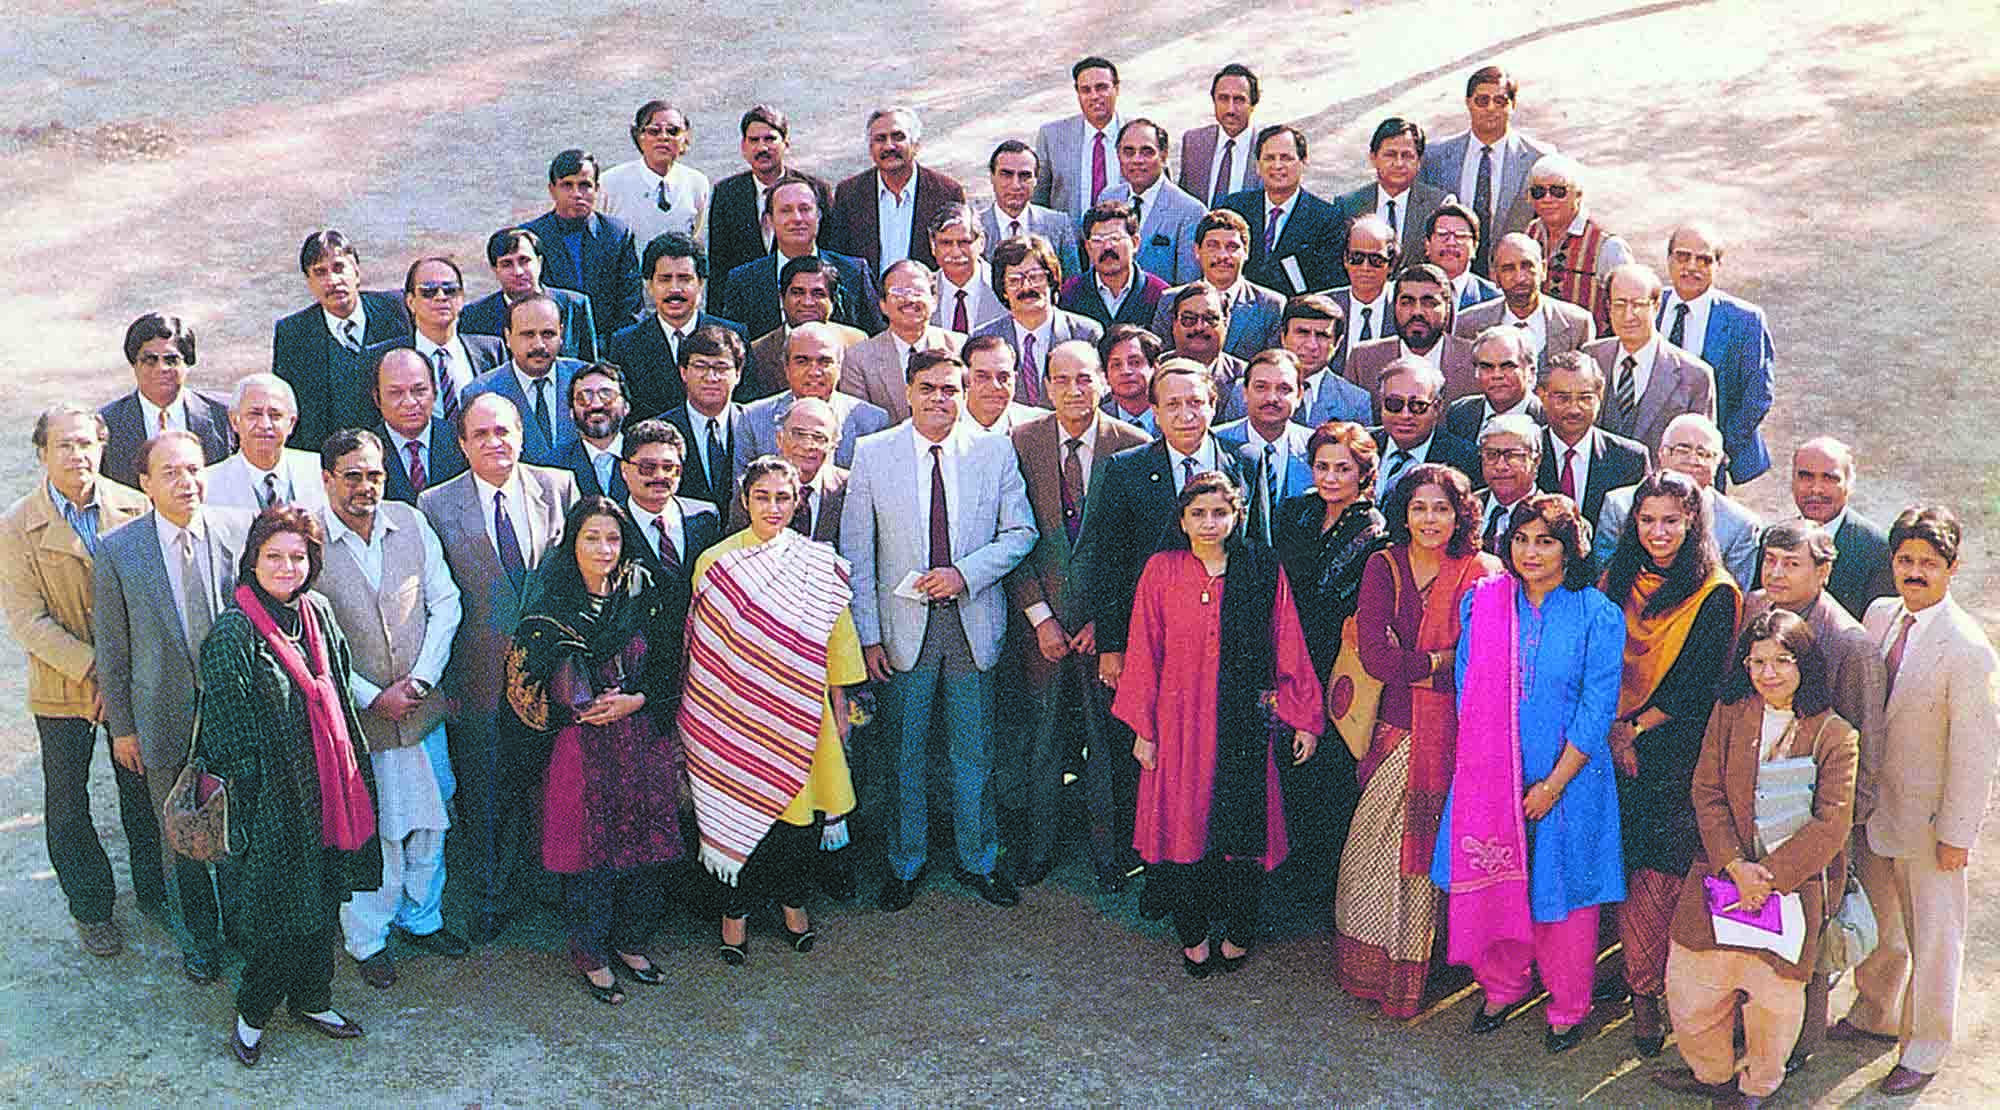 The Organising Committee of <em>AdAsia</em> 89 Pakistan. The 16th Asian Advertising Congress was organised in Lahore after Pakistan made a successful bid in Seoul in 1984 and won over Australia to host the event. Come 1989 and Pakistan played host to one of the most memorable AdAsias, despite the lack of conference and entertainment facilities. (photo: The Congress Handbook, AdAsia 89, and S.M. Shahid)